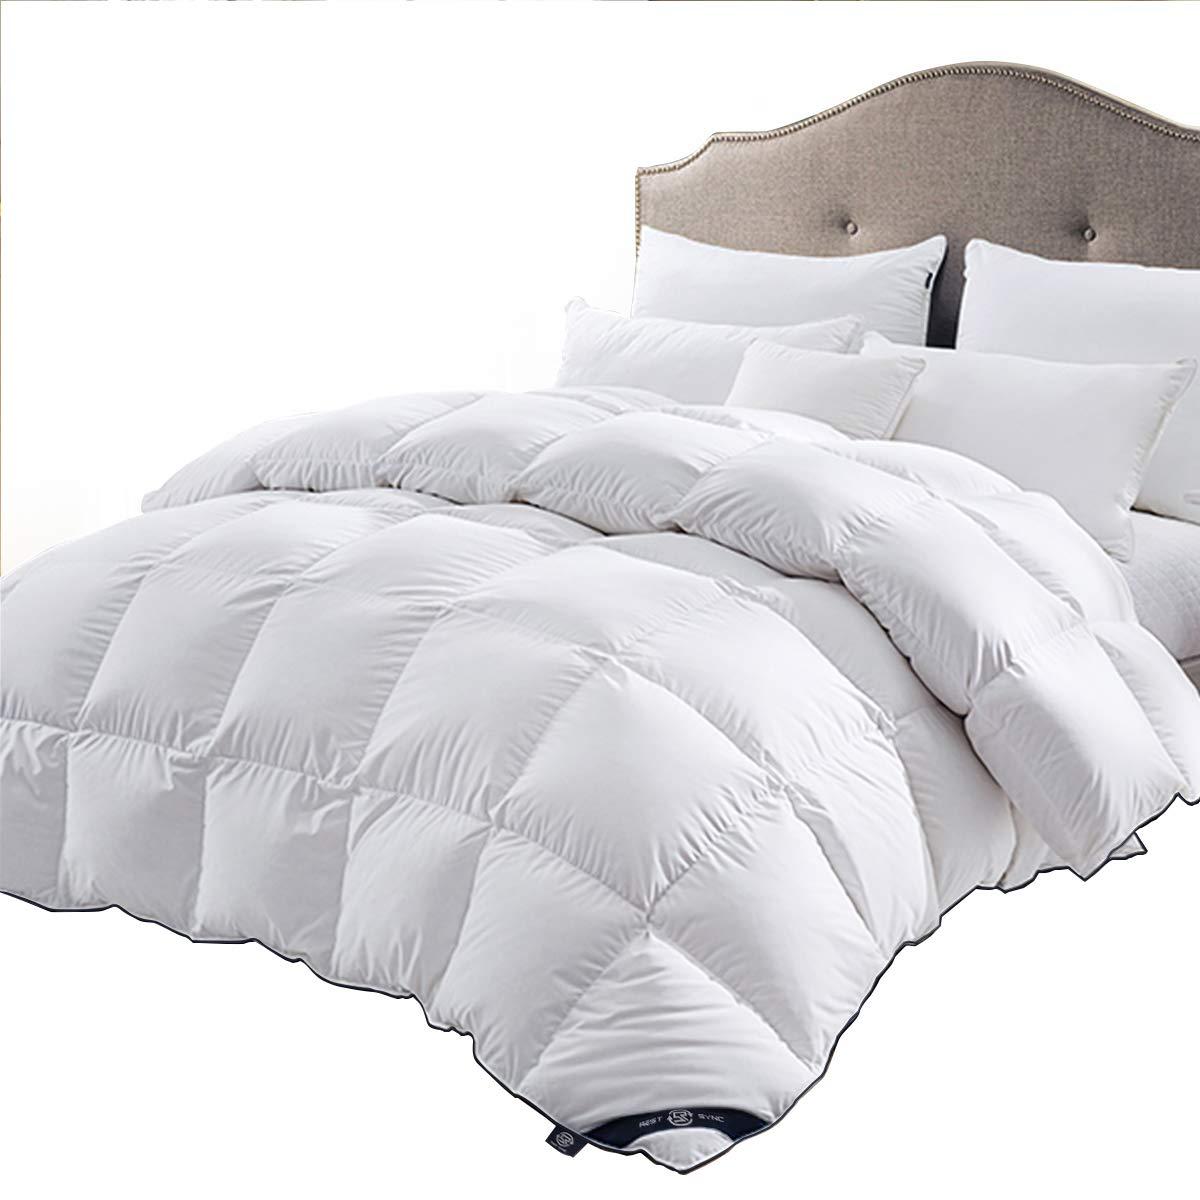 REST SYNC Full/Queen Size All Seasons Comforter Duvet Insert White with Corner Tabs - Luxury Hotel Collection Hypoallergenic Goose Down Alternative Comforter